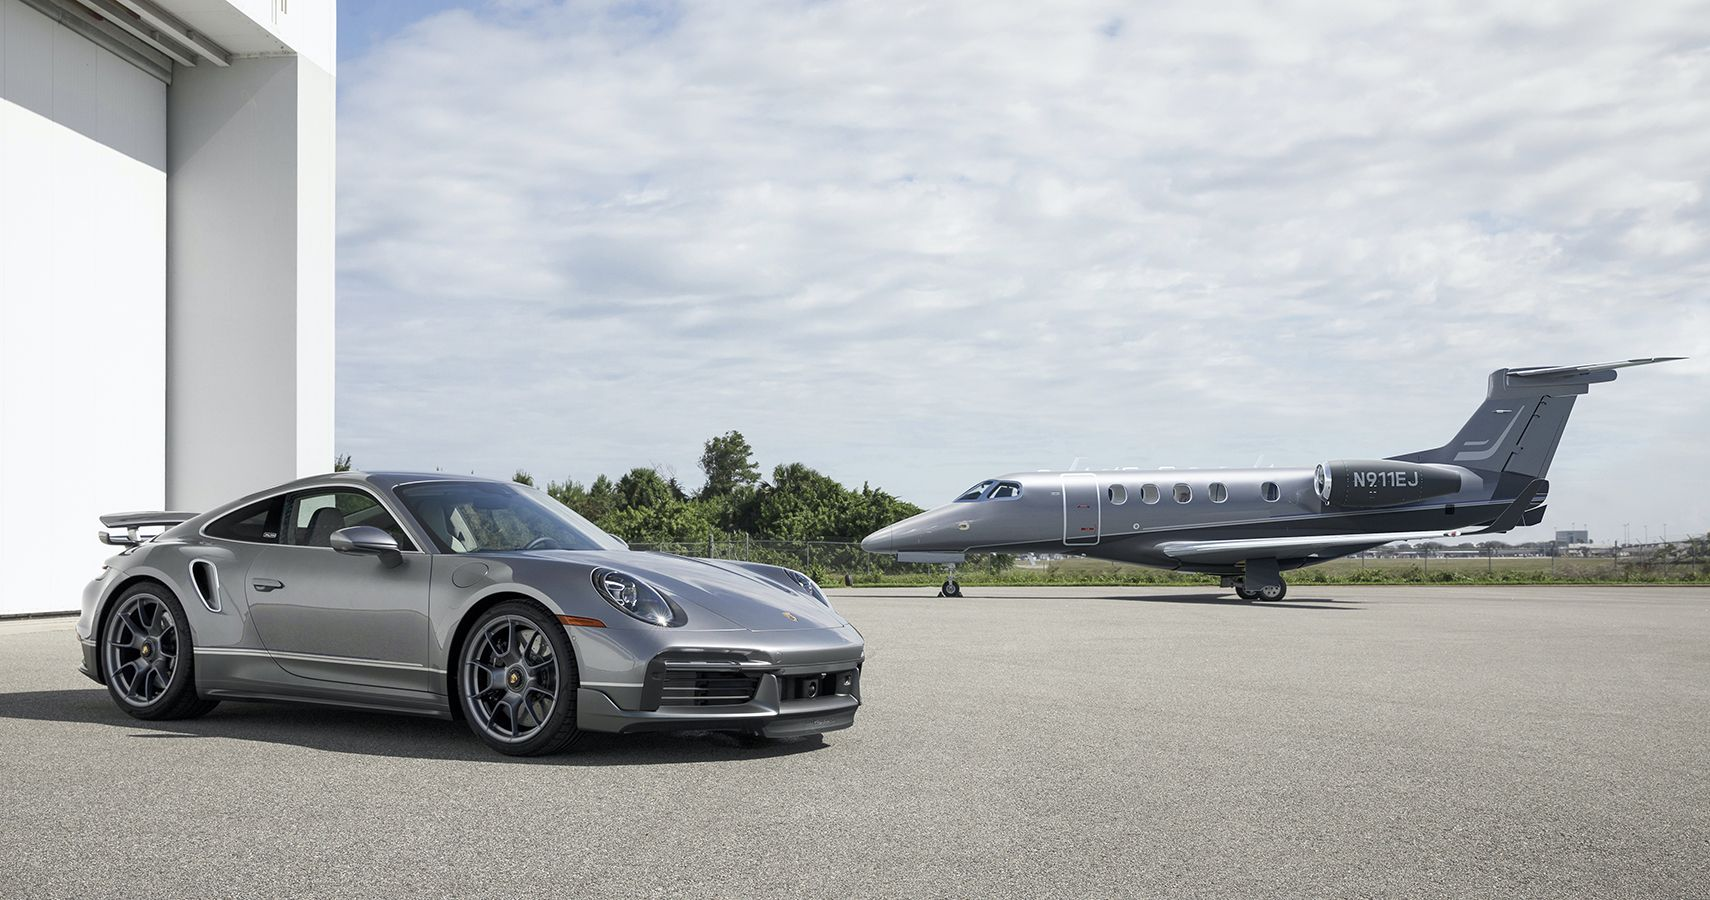 Want This Ultra-Exclusive Porsche 911 Turbo S? You'll Need To Buy This Business Jet First